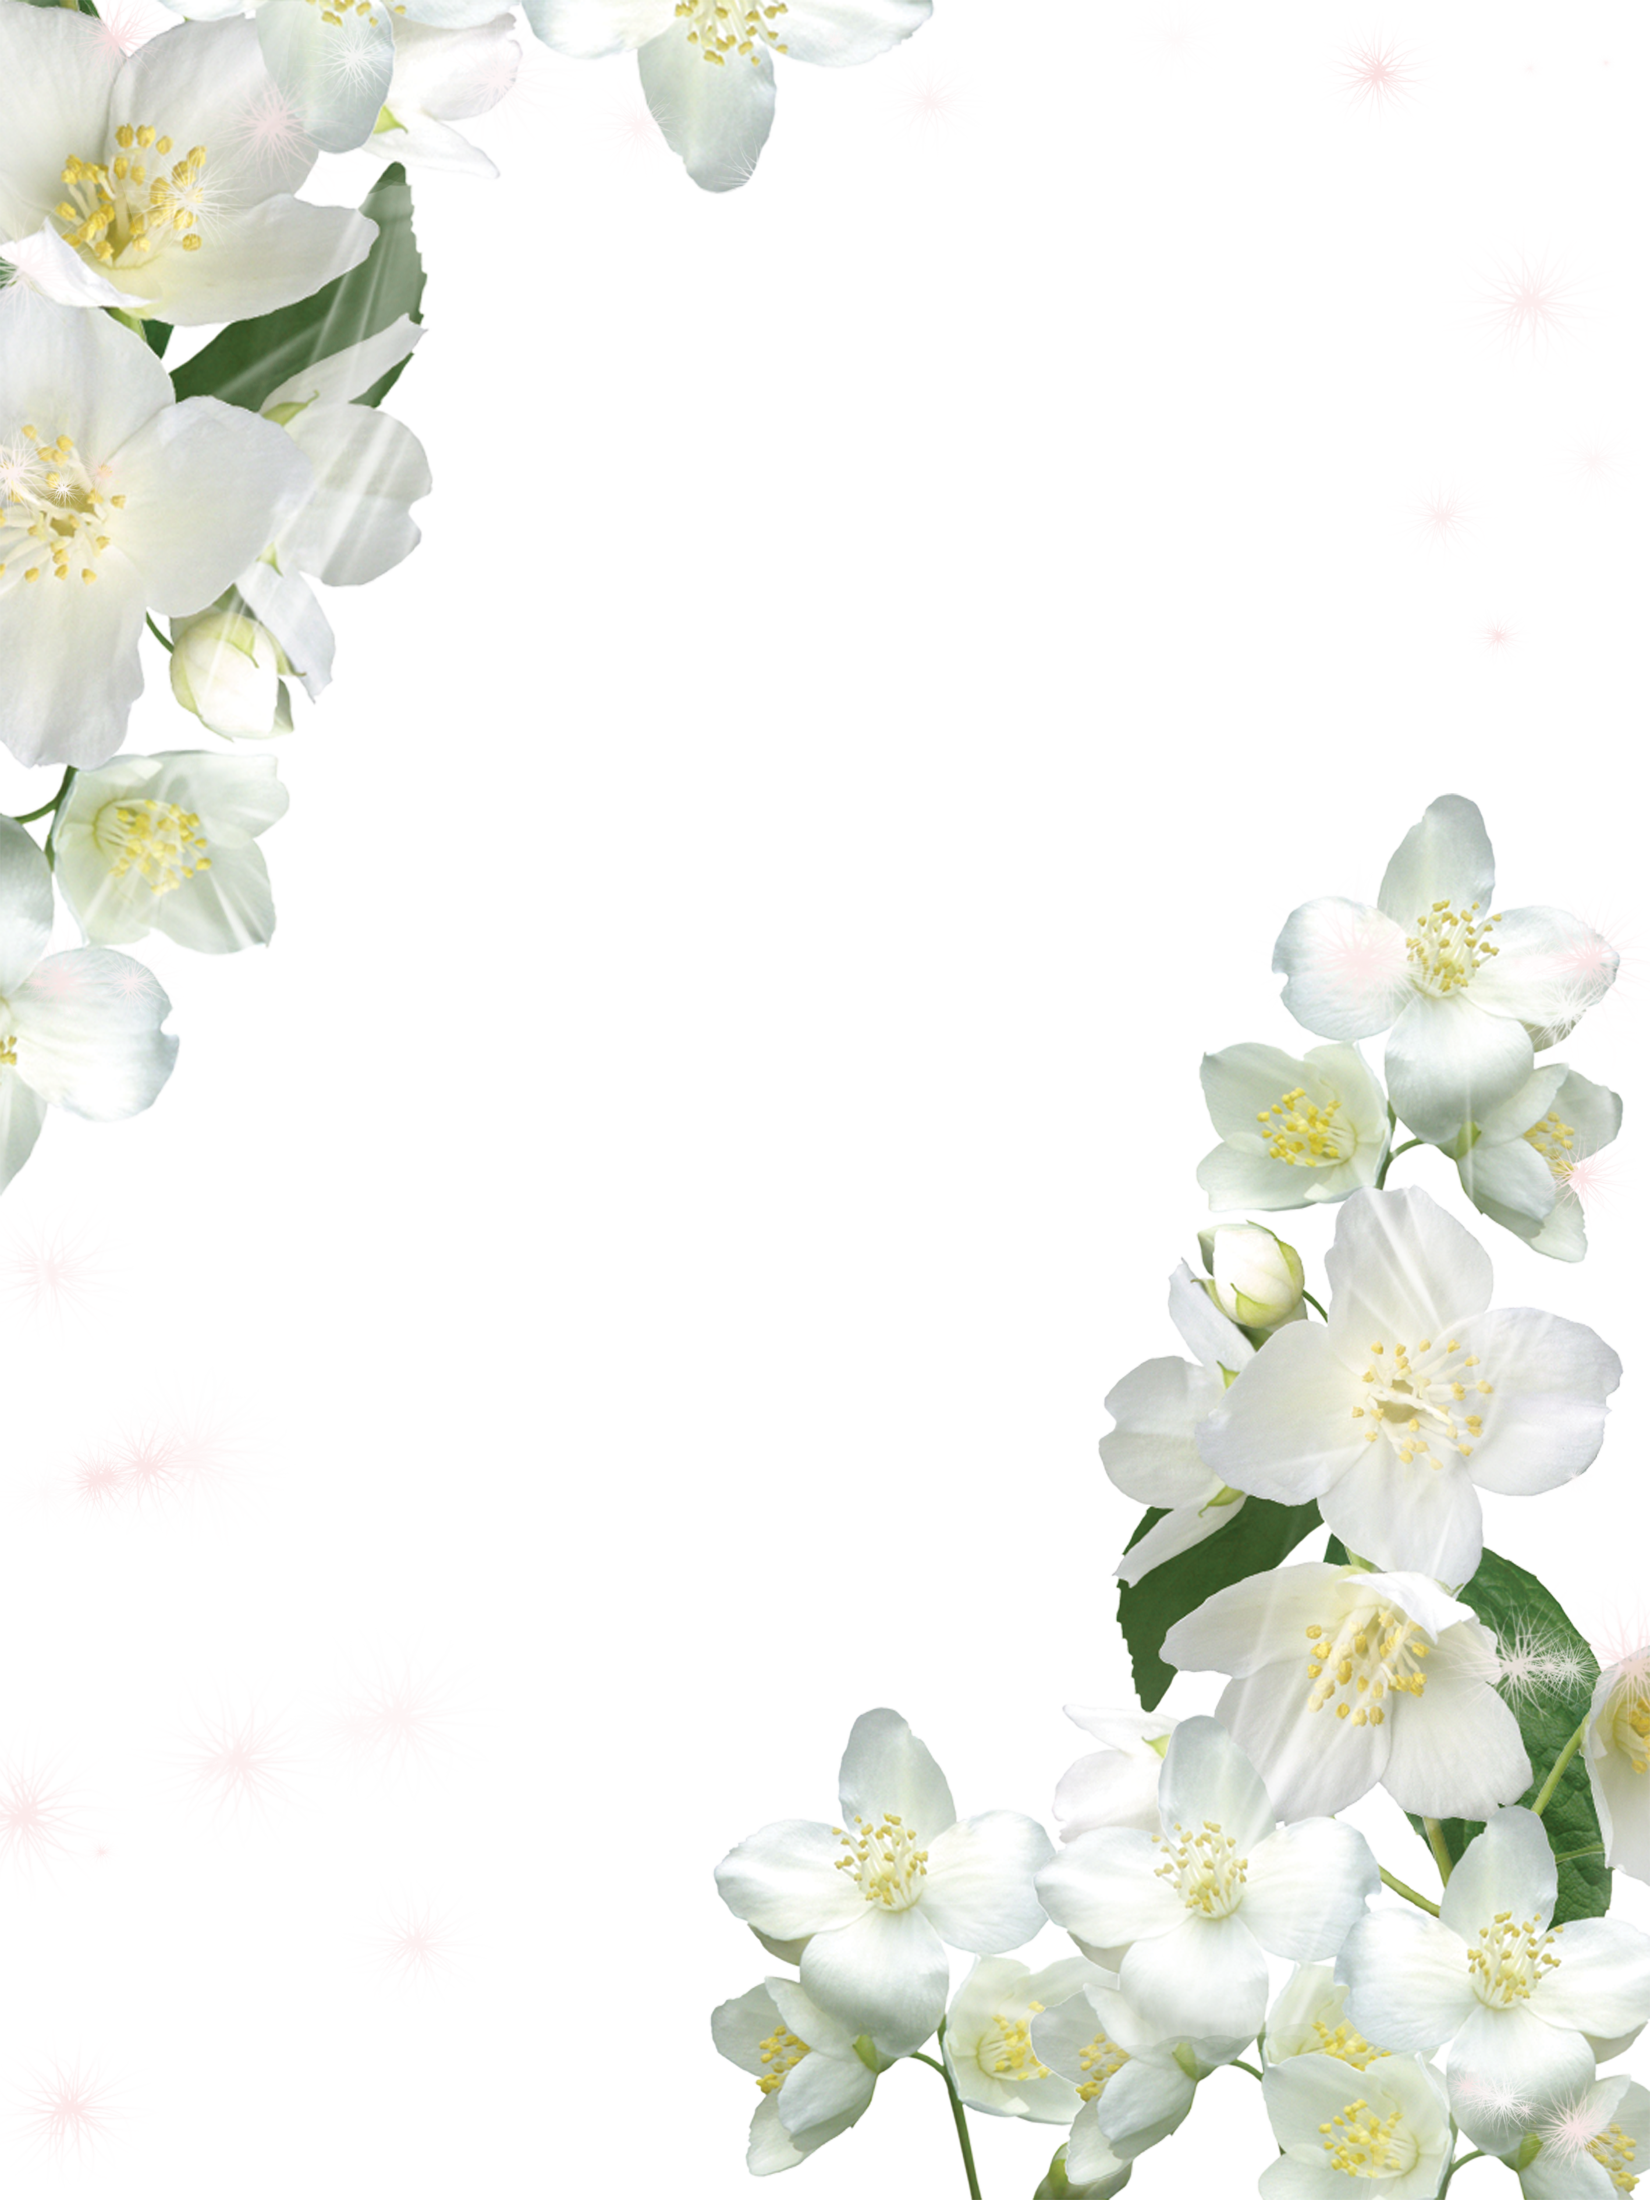 White flowers png. Transparent photo frame with